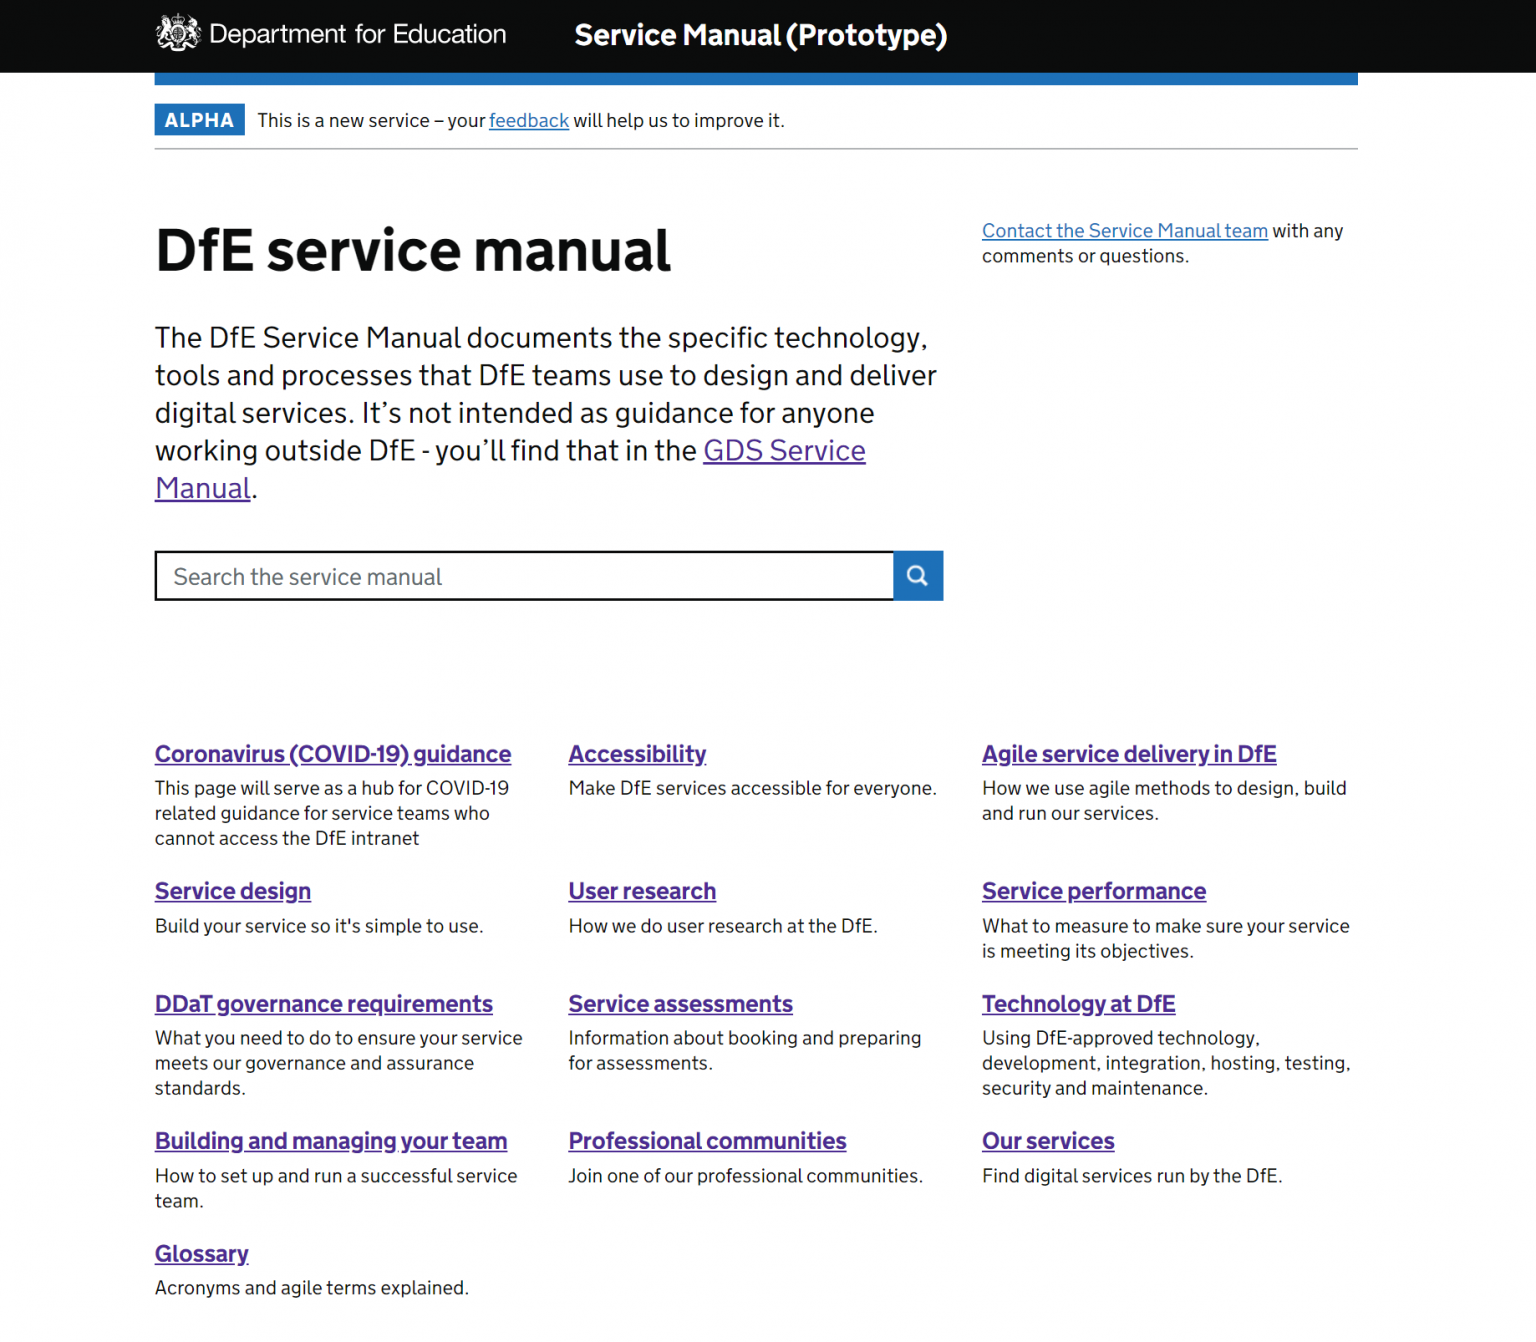 Screenshot of the service manual prototype on the Department for Education webpage